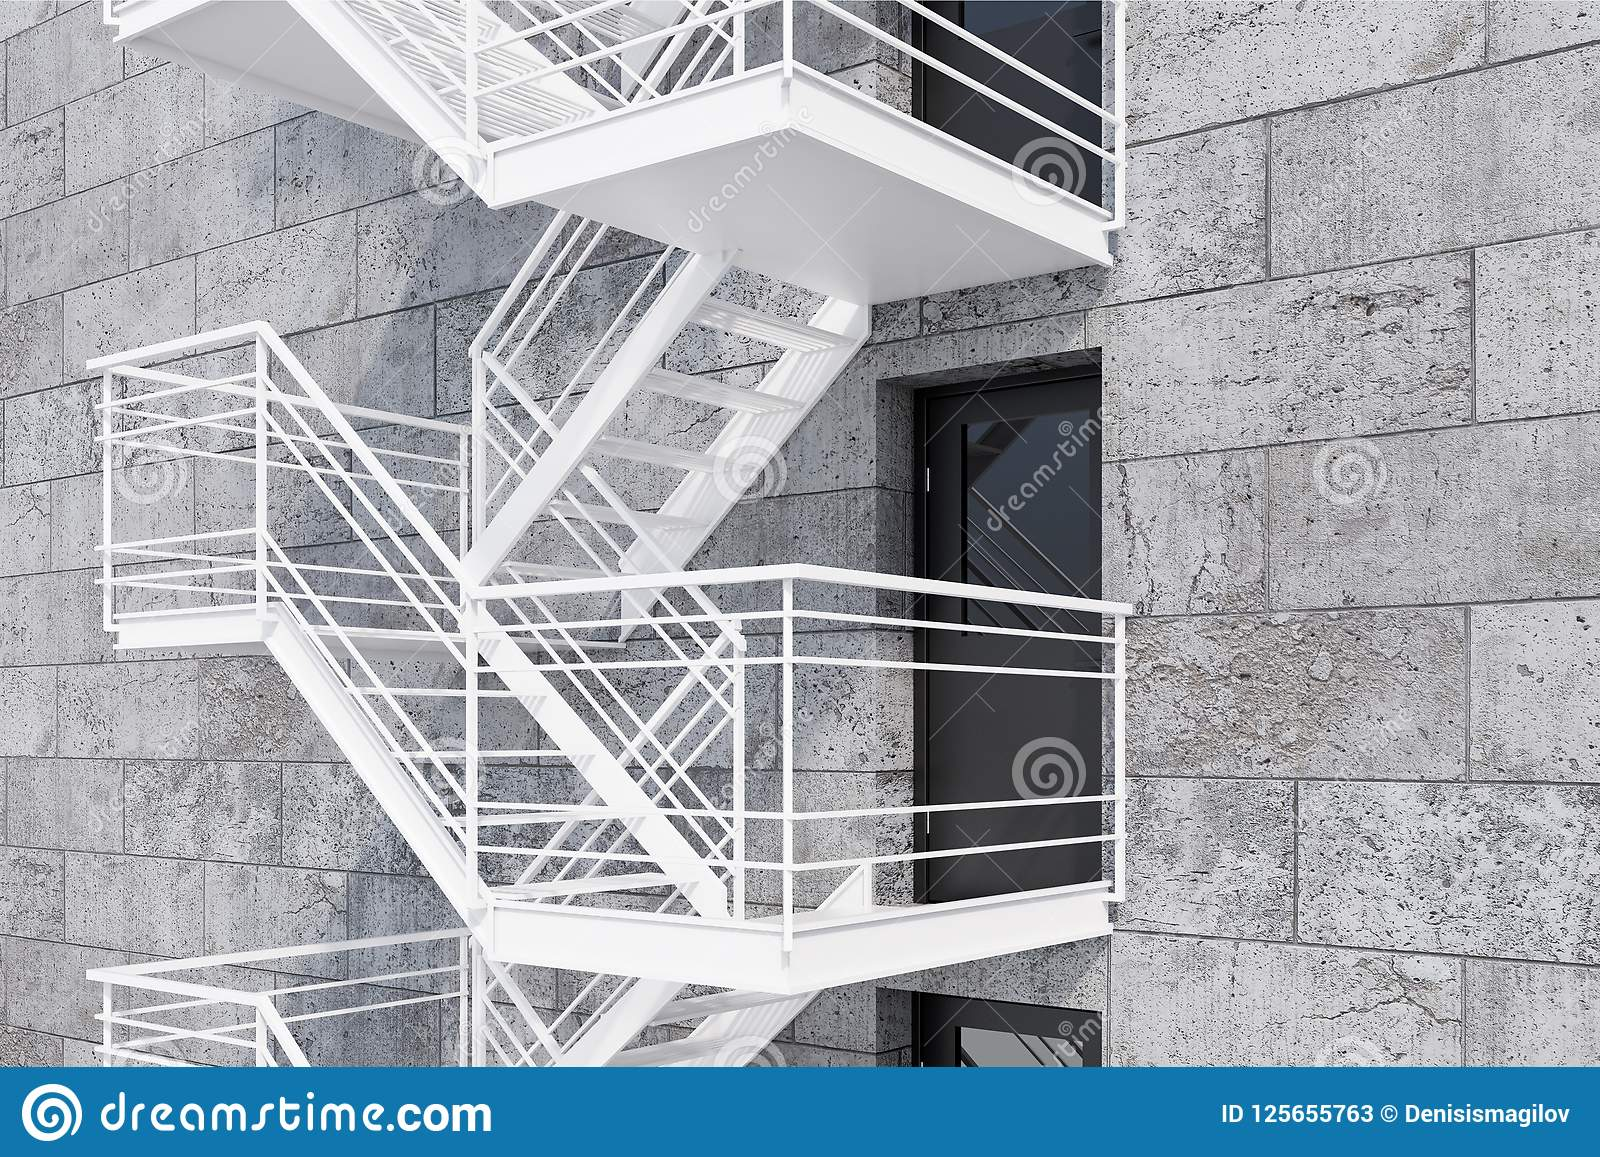 Side View Of Modern Building Exterior With Concrete Brick Walls, Grey Doors  And Emergency Exit Stairs. Concept Of Plan B And Creative Thinking.